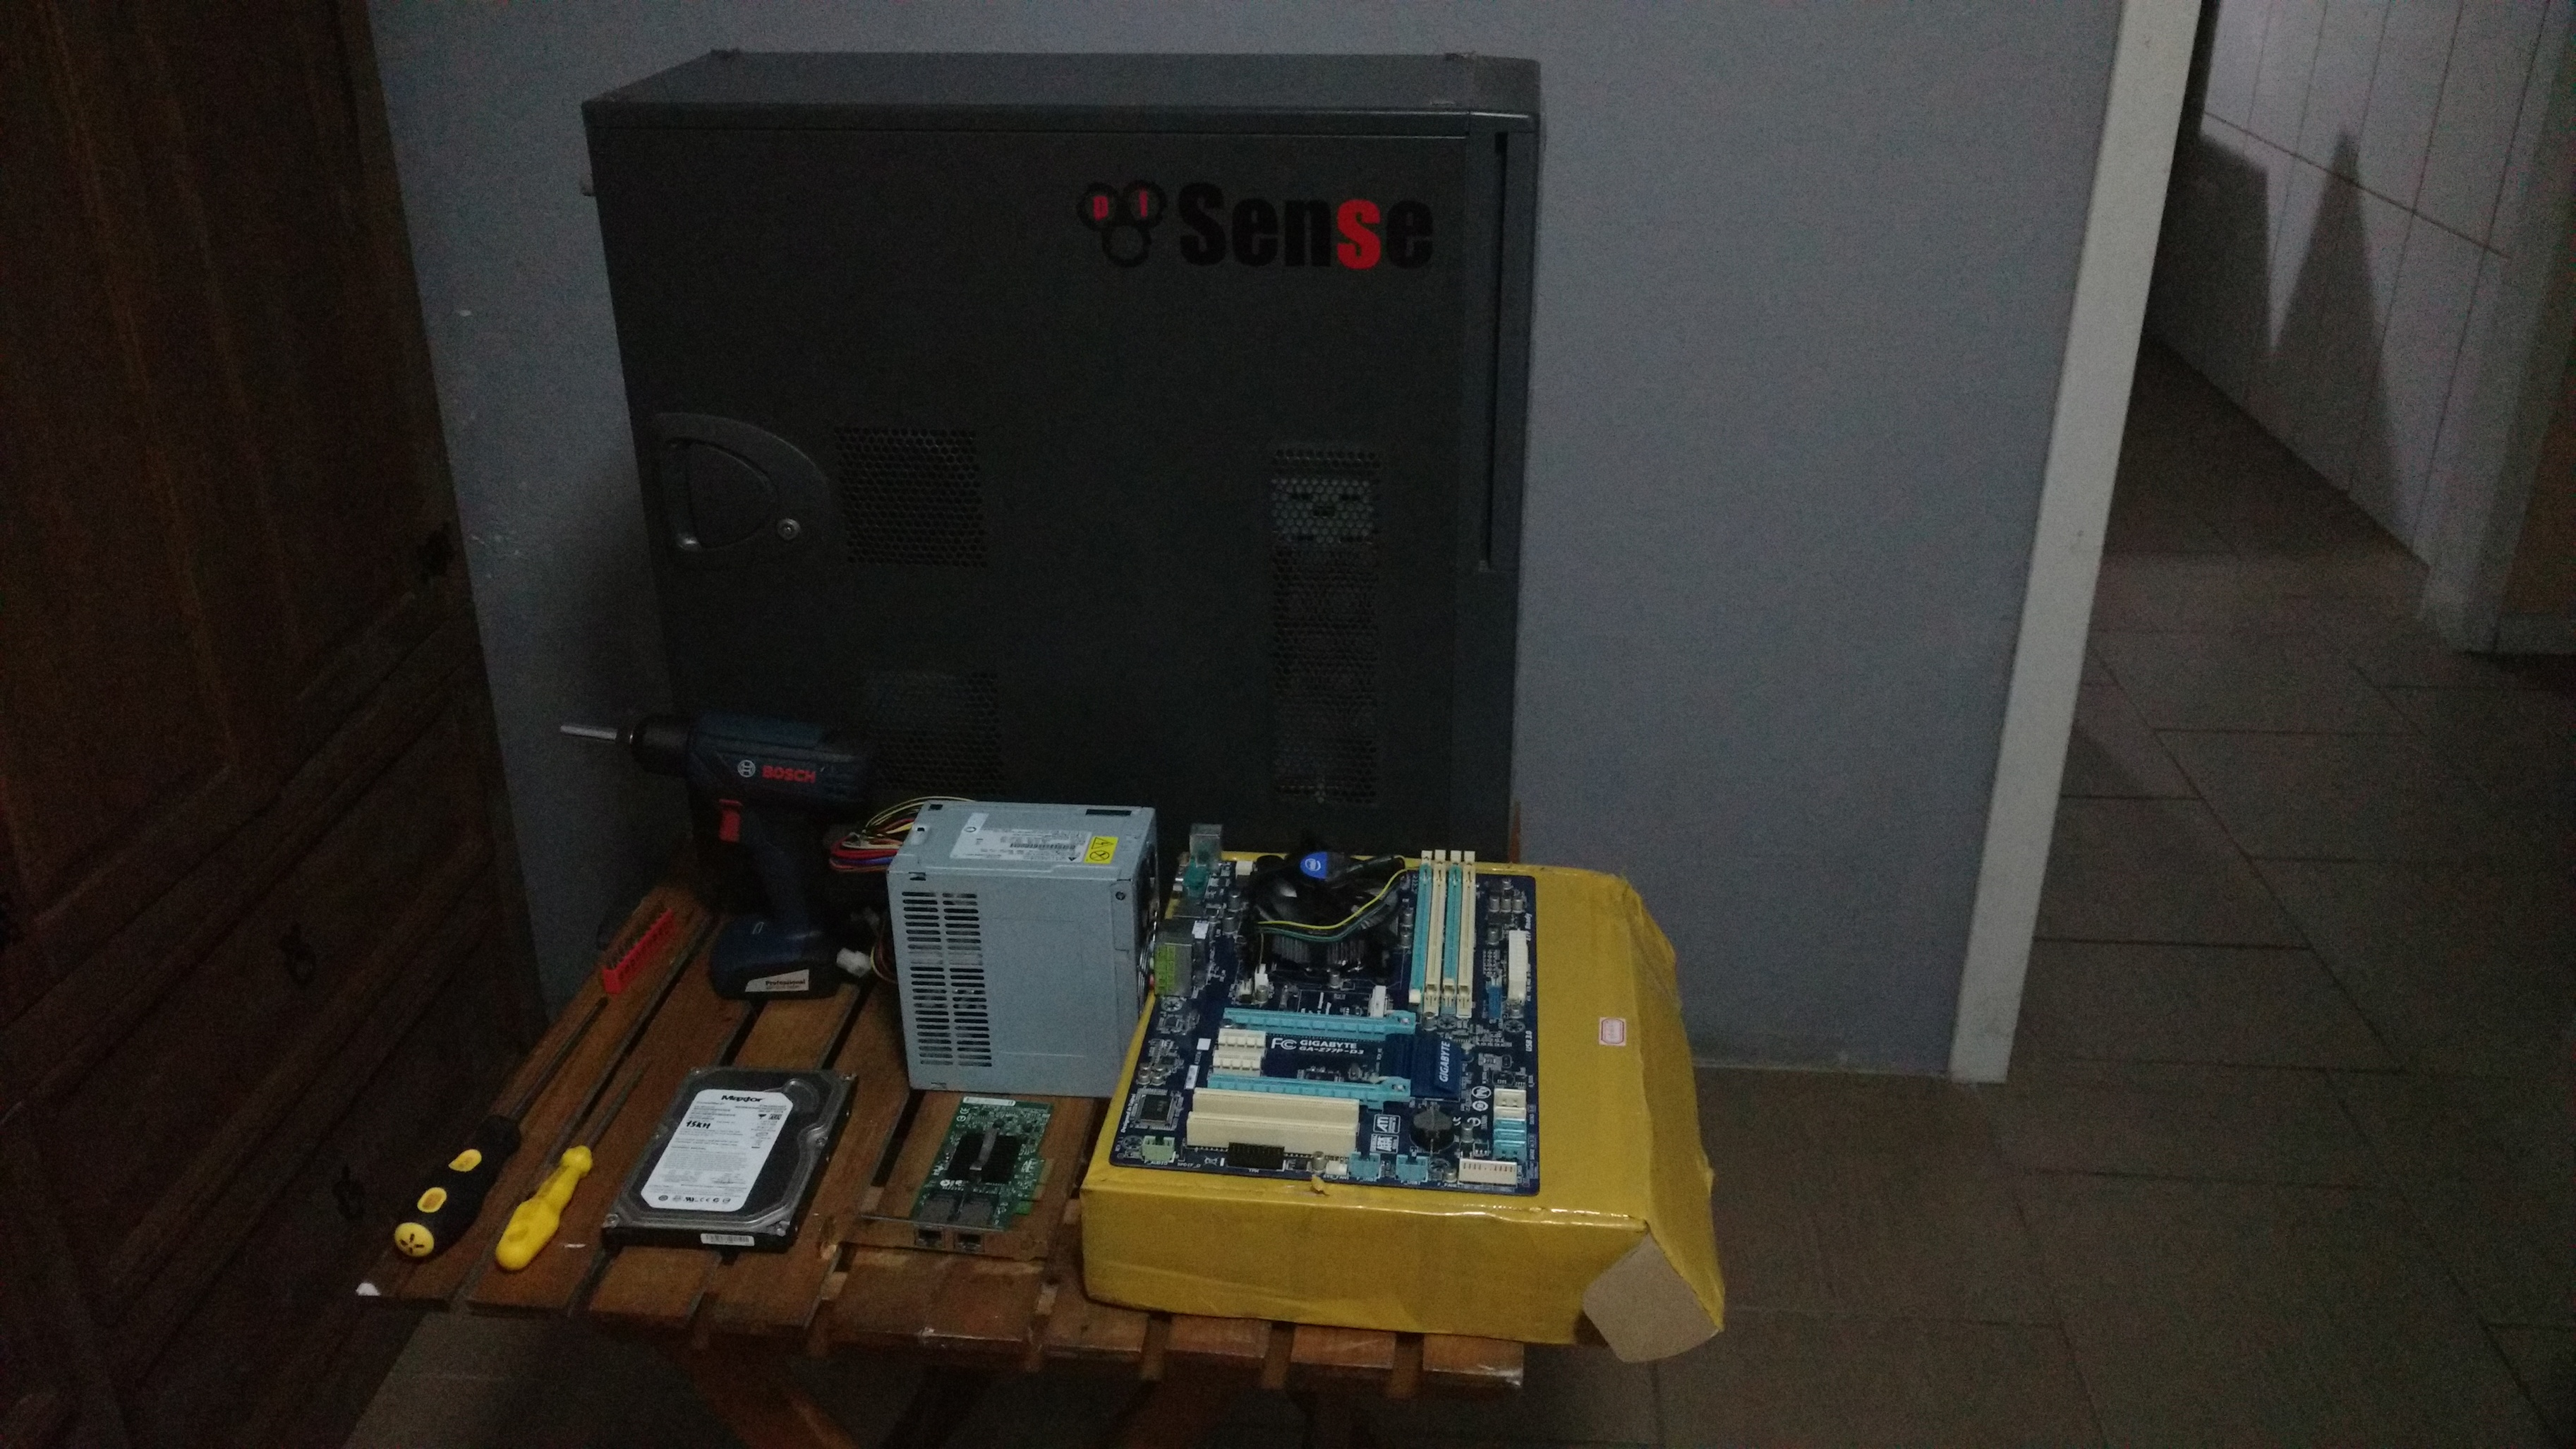 Best Barebone PC For DIY Router? - Networking Hardware